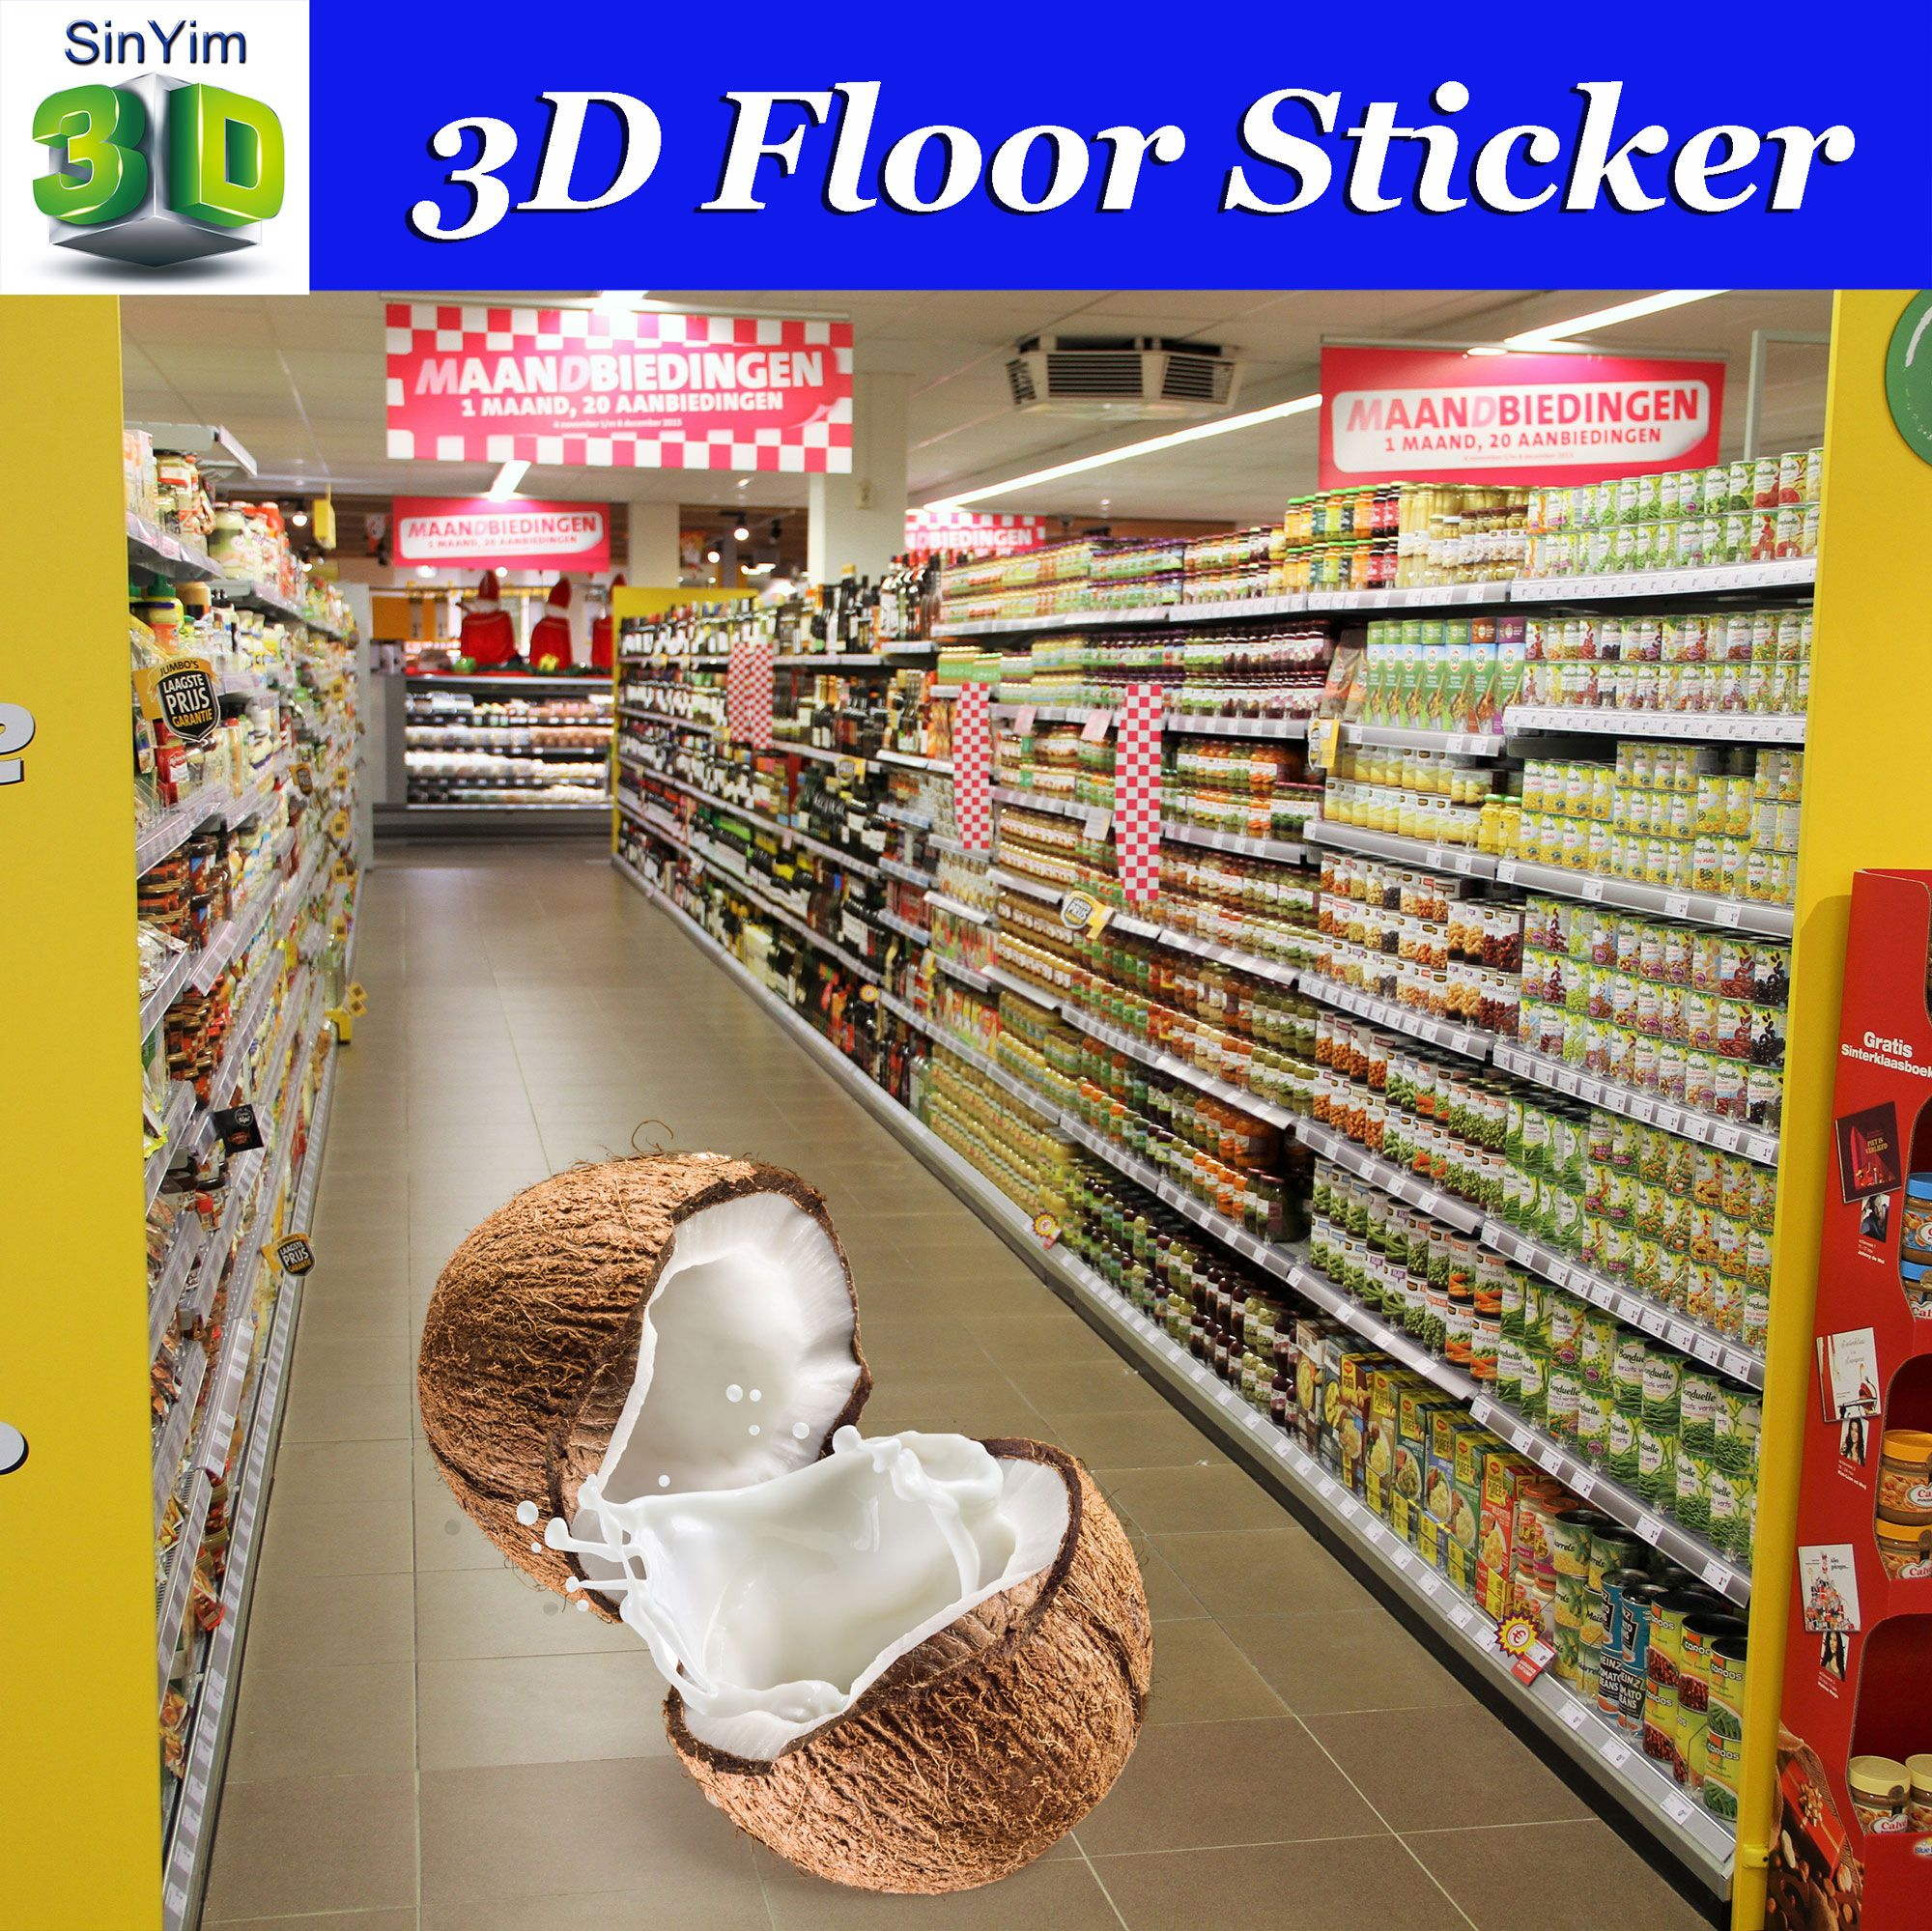 Custom 3d floor stickers 3d floor decals 3d floor graphics for high impact in store advertising fruit juice promotion